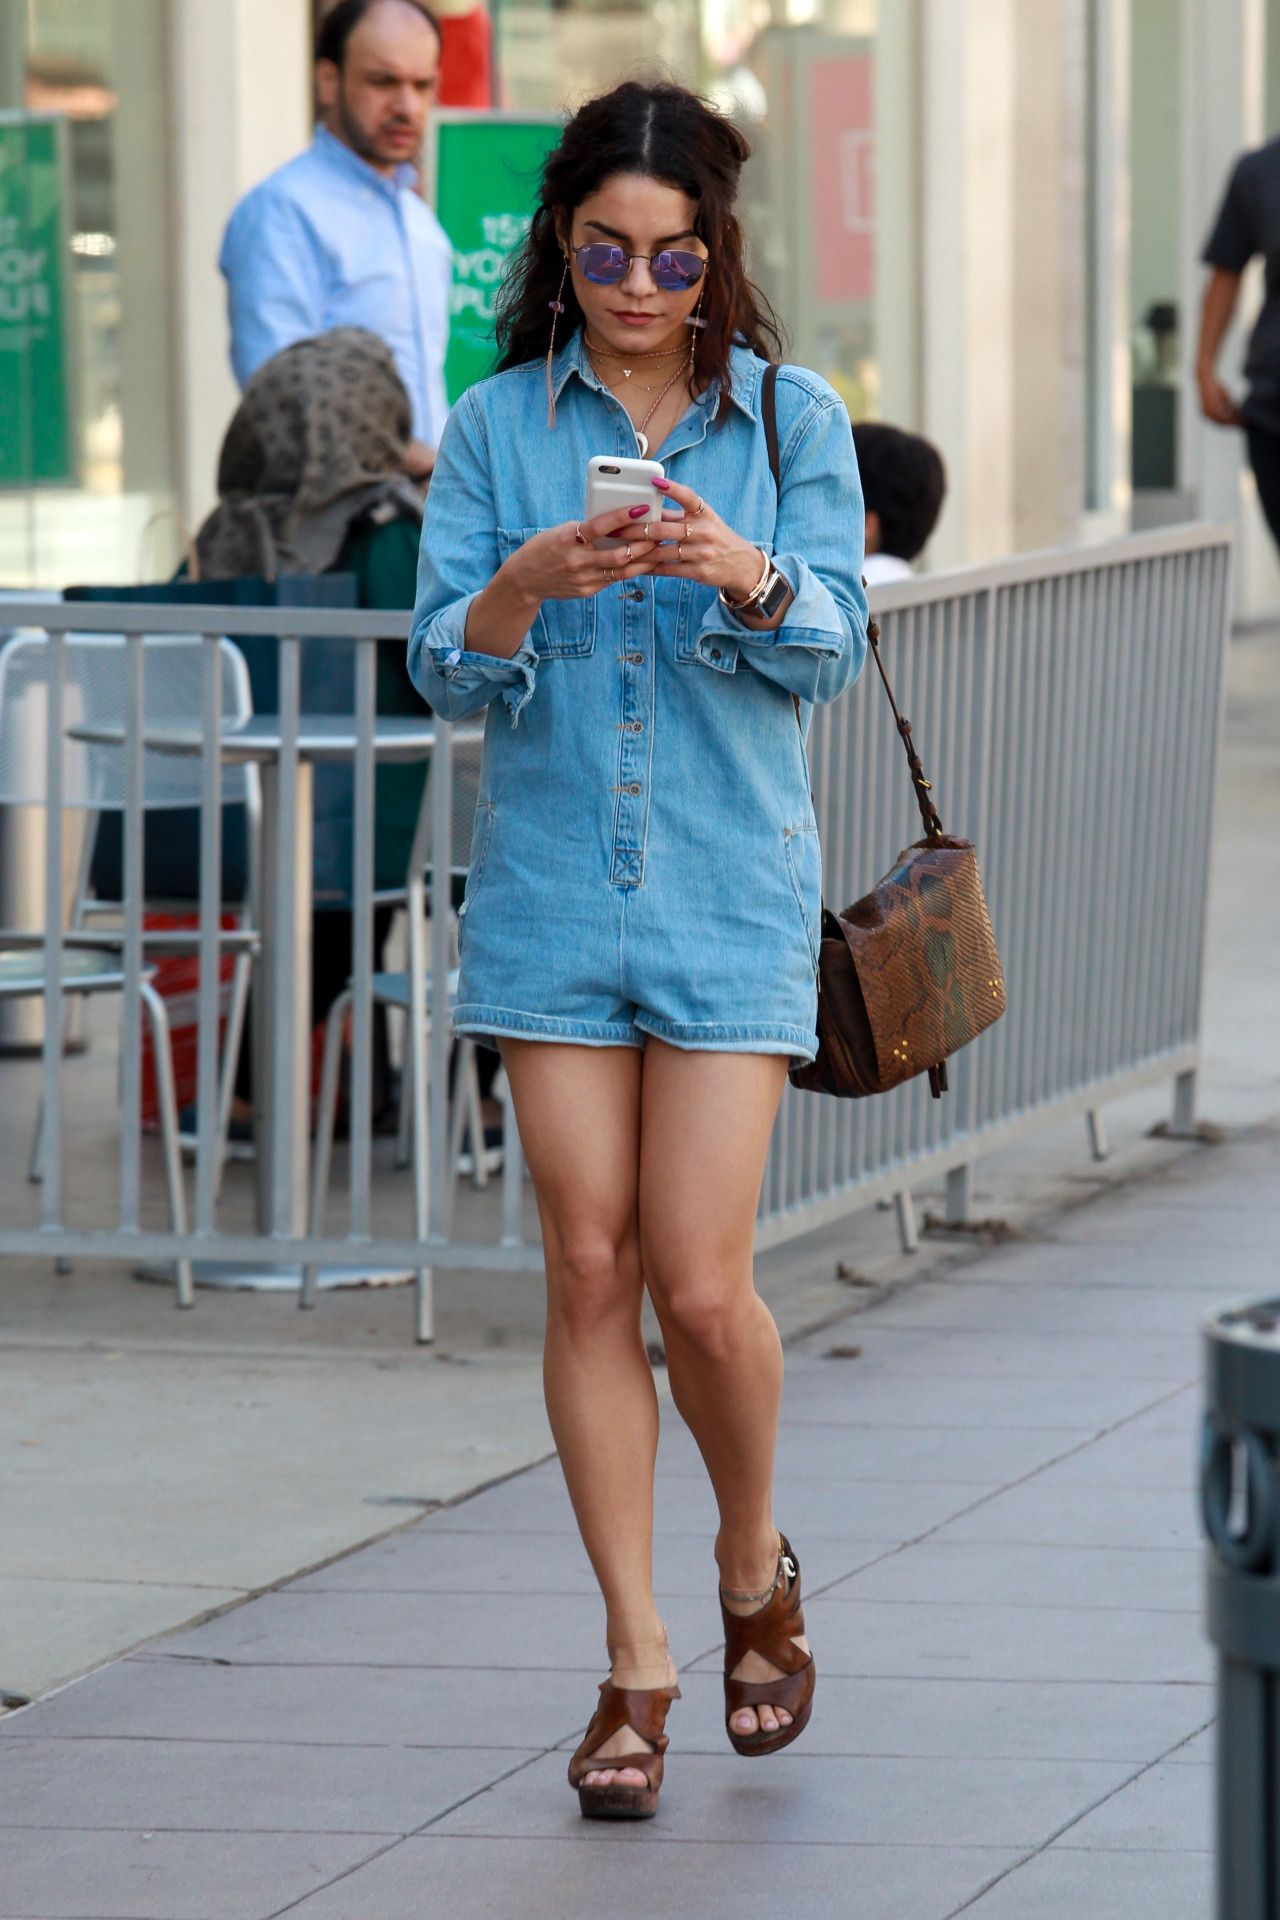 Vanessa Hudgens Out and about Third Street Promenade in Santa Monica - April 5th